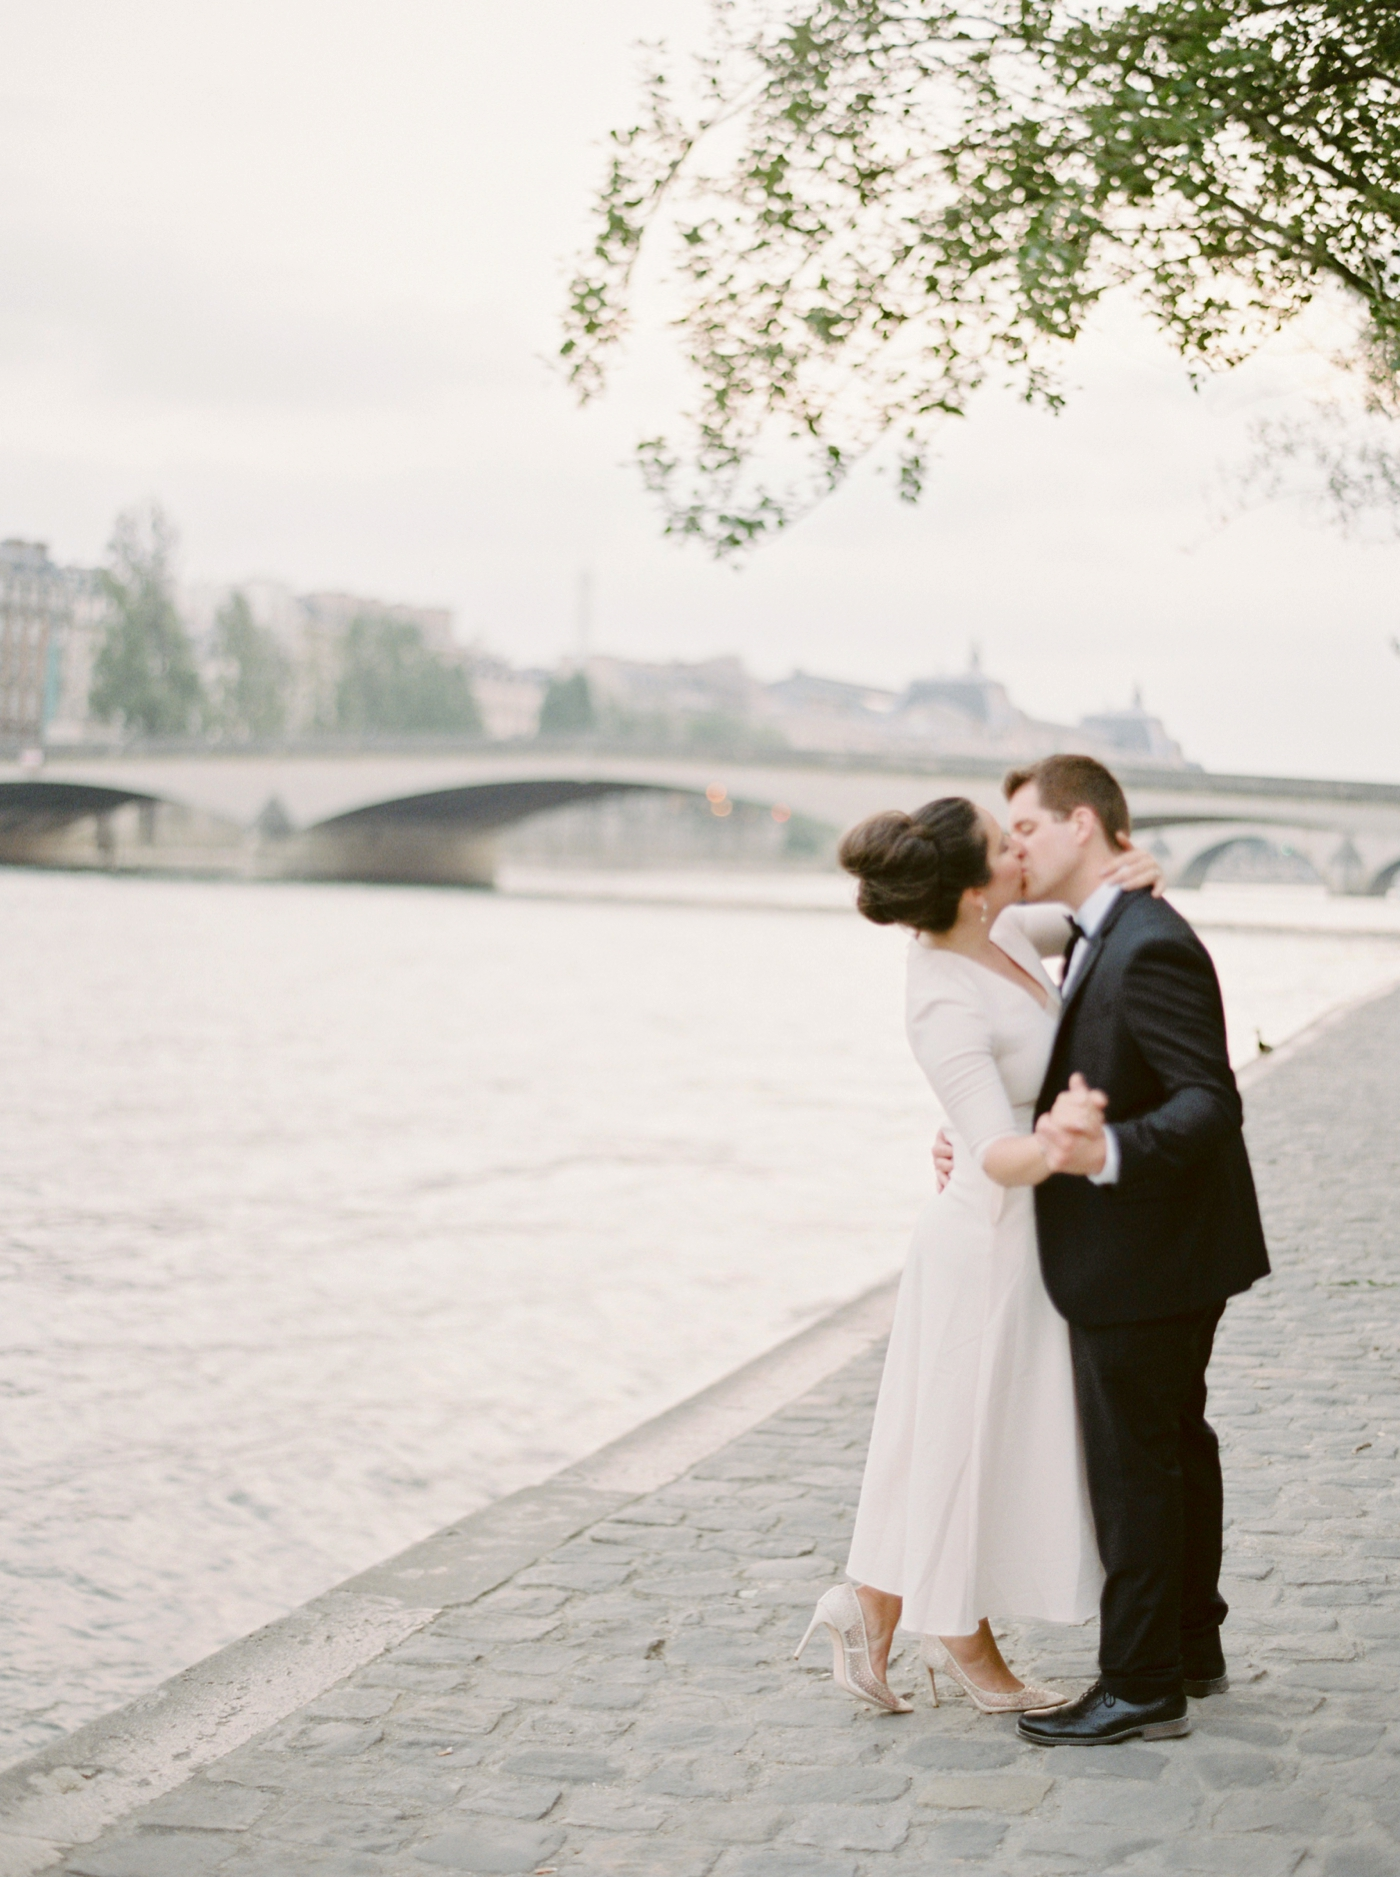 Paris weding photographers | pre wedding engagement session | fine art film photographer justine milton